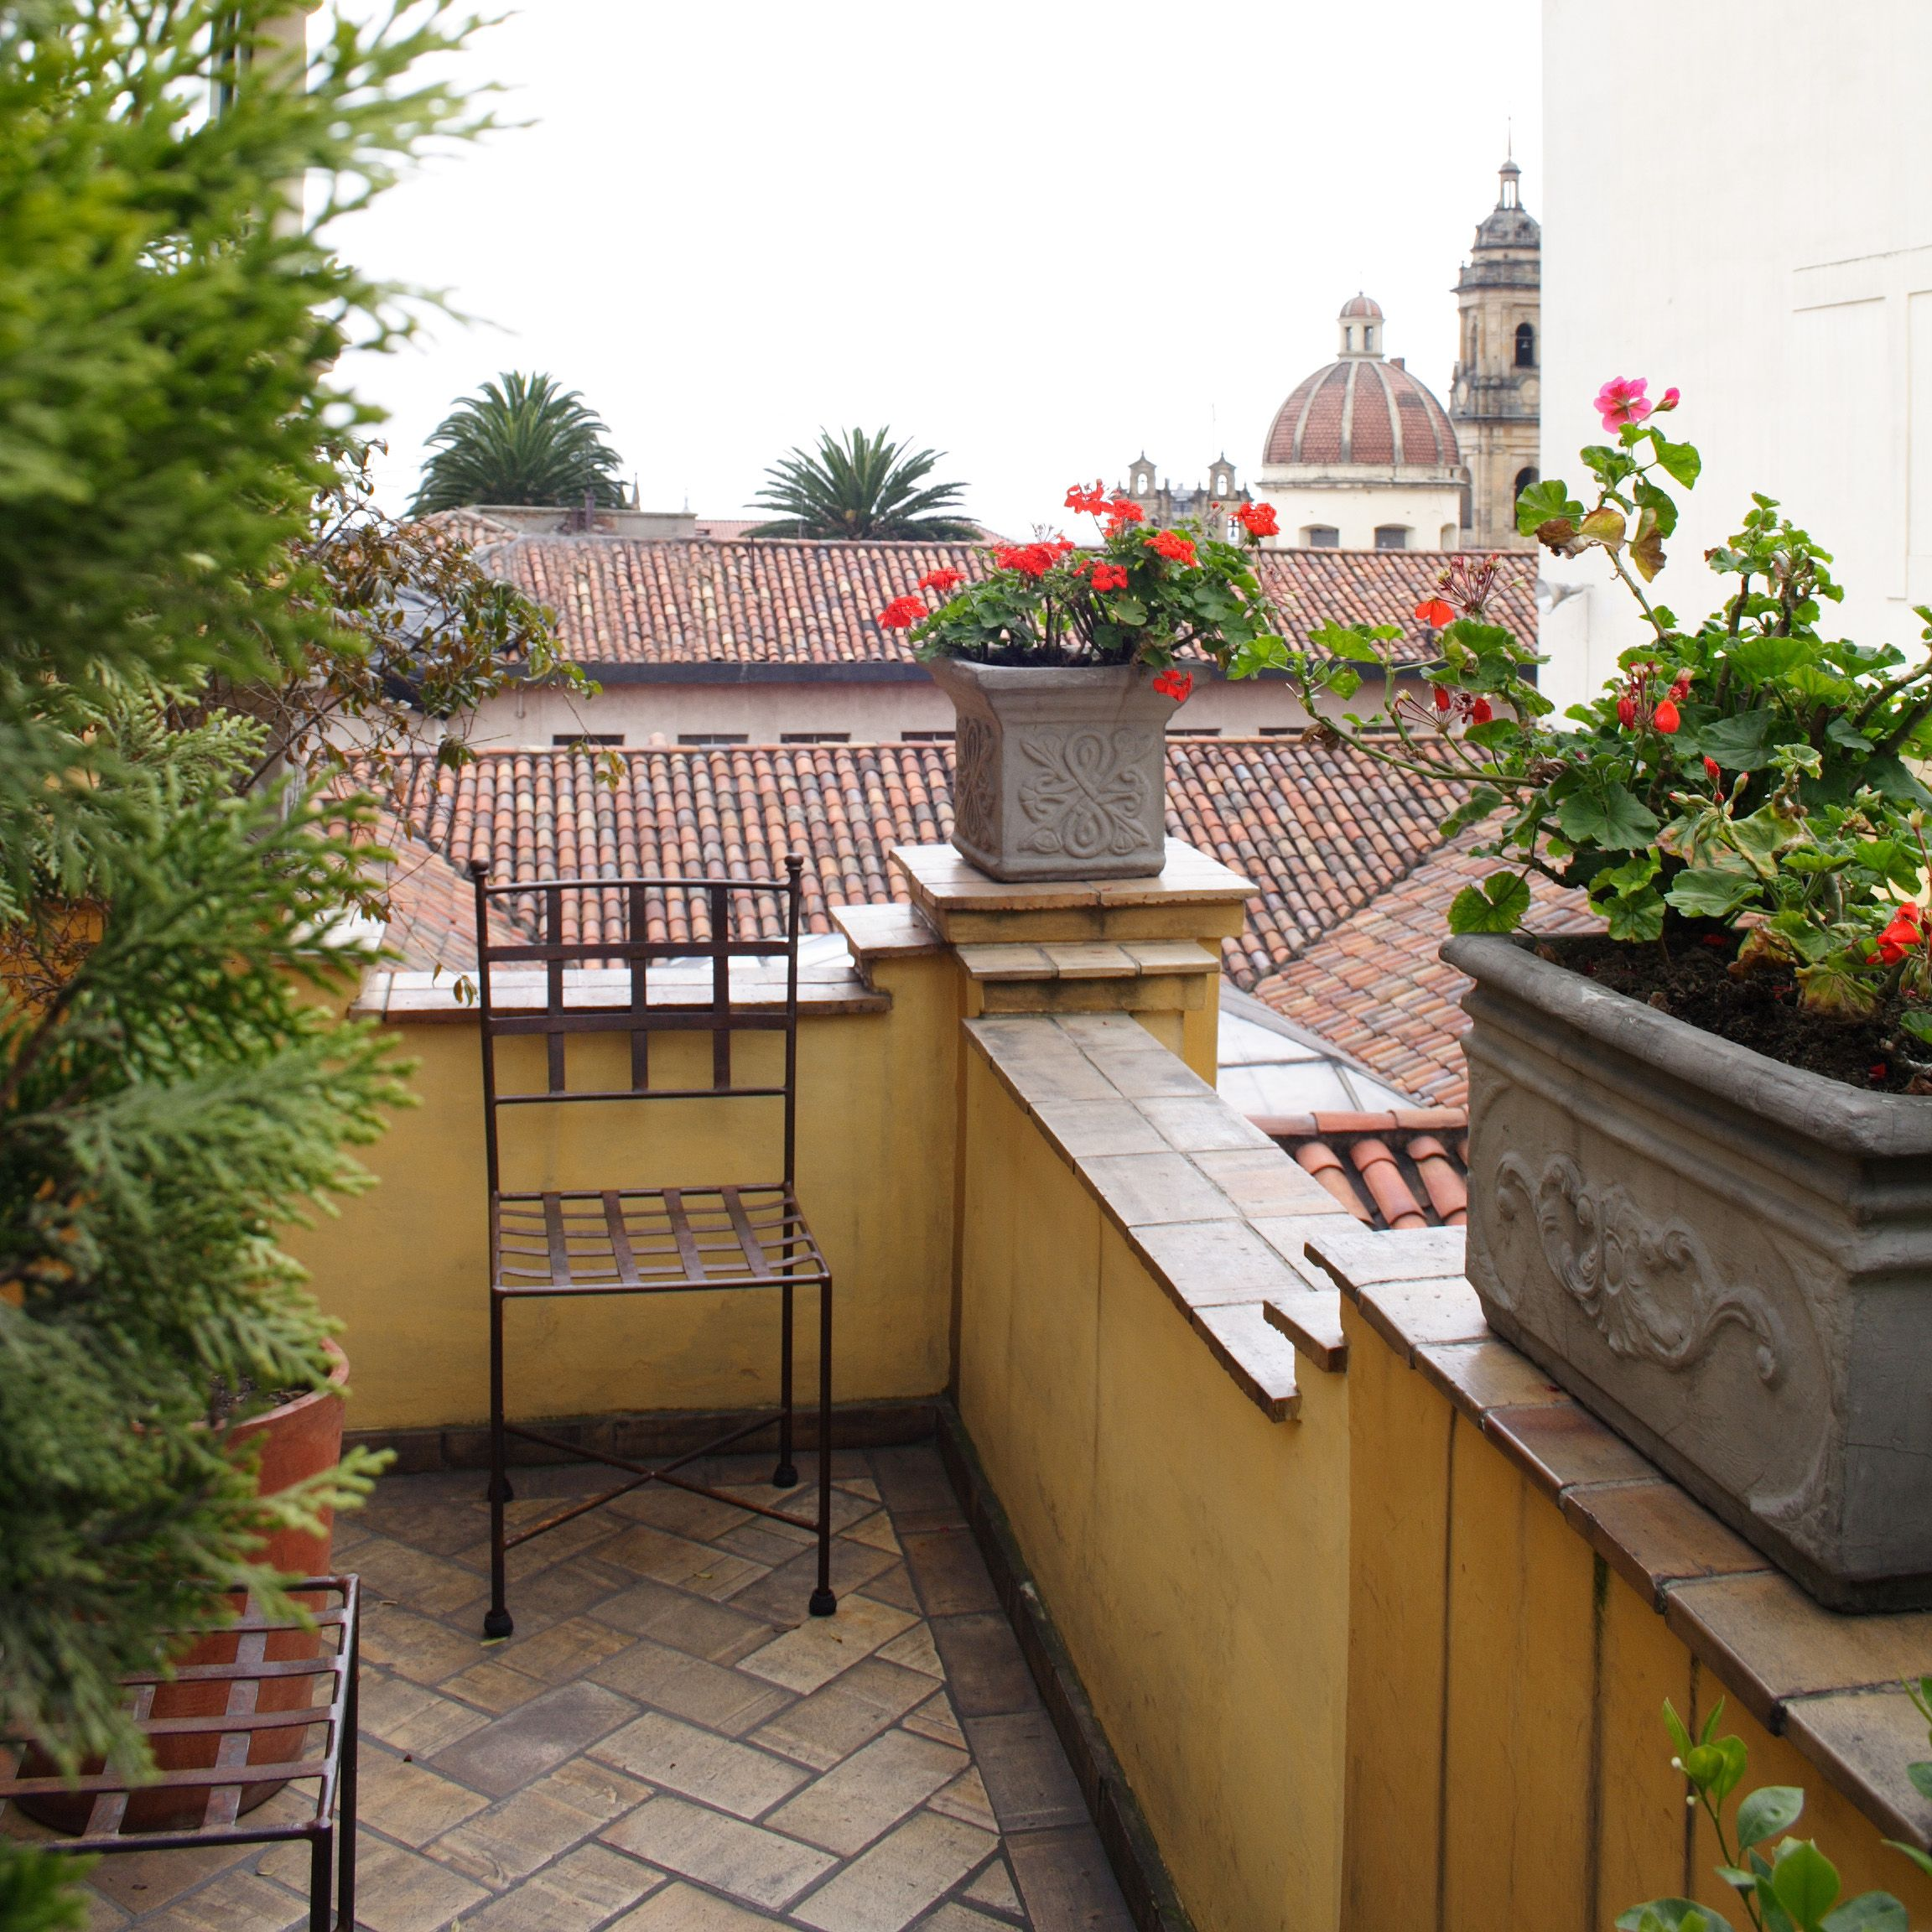 View over the rooftops of La Candelaria from the Hotel de la Opera (Bogotá - Colombia)